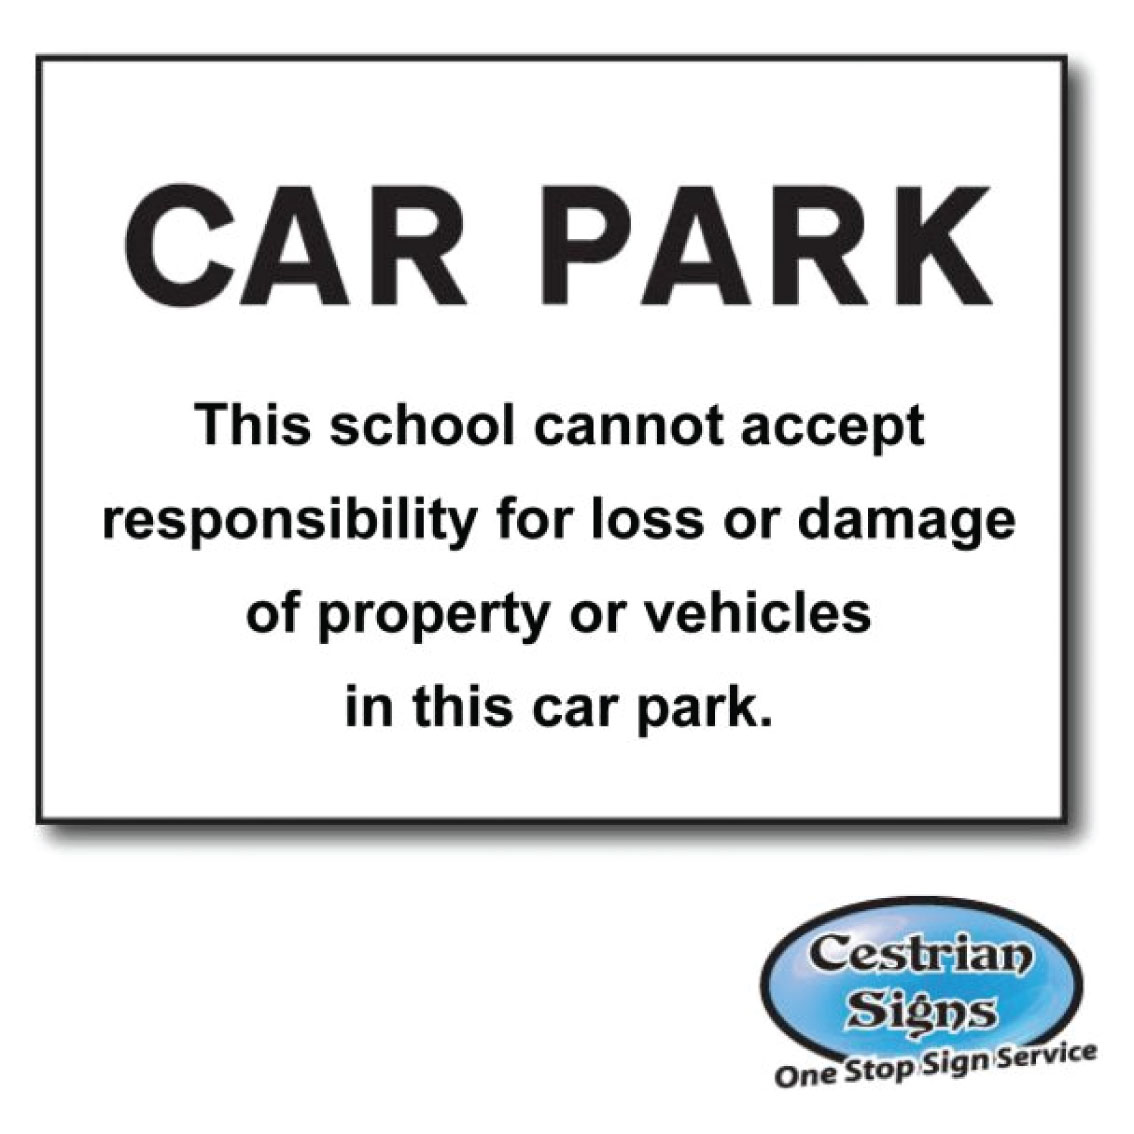 School Disclaimer signs